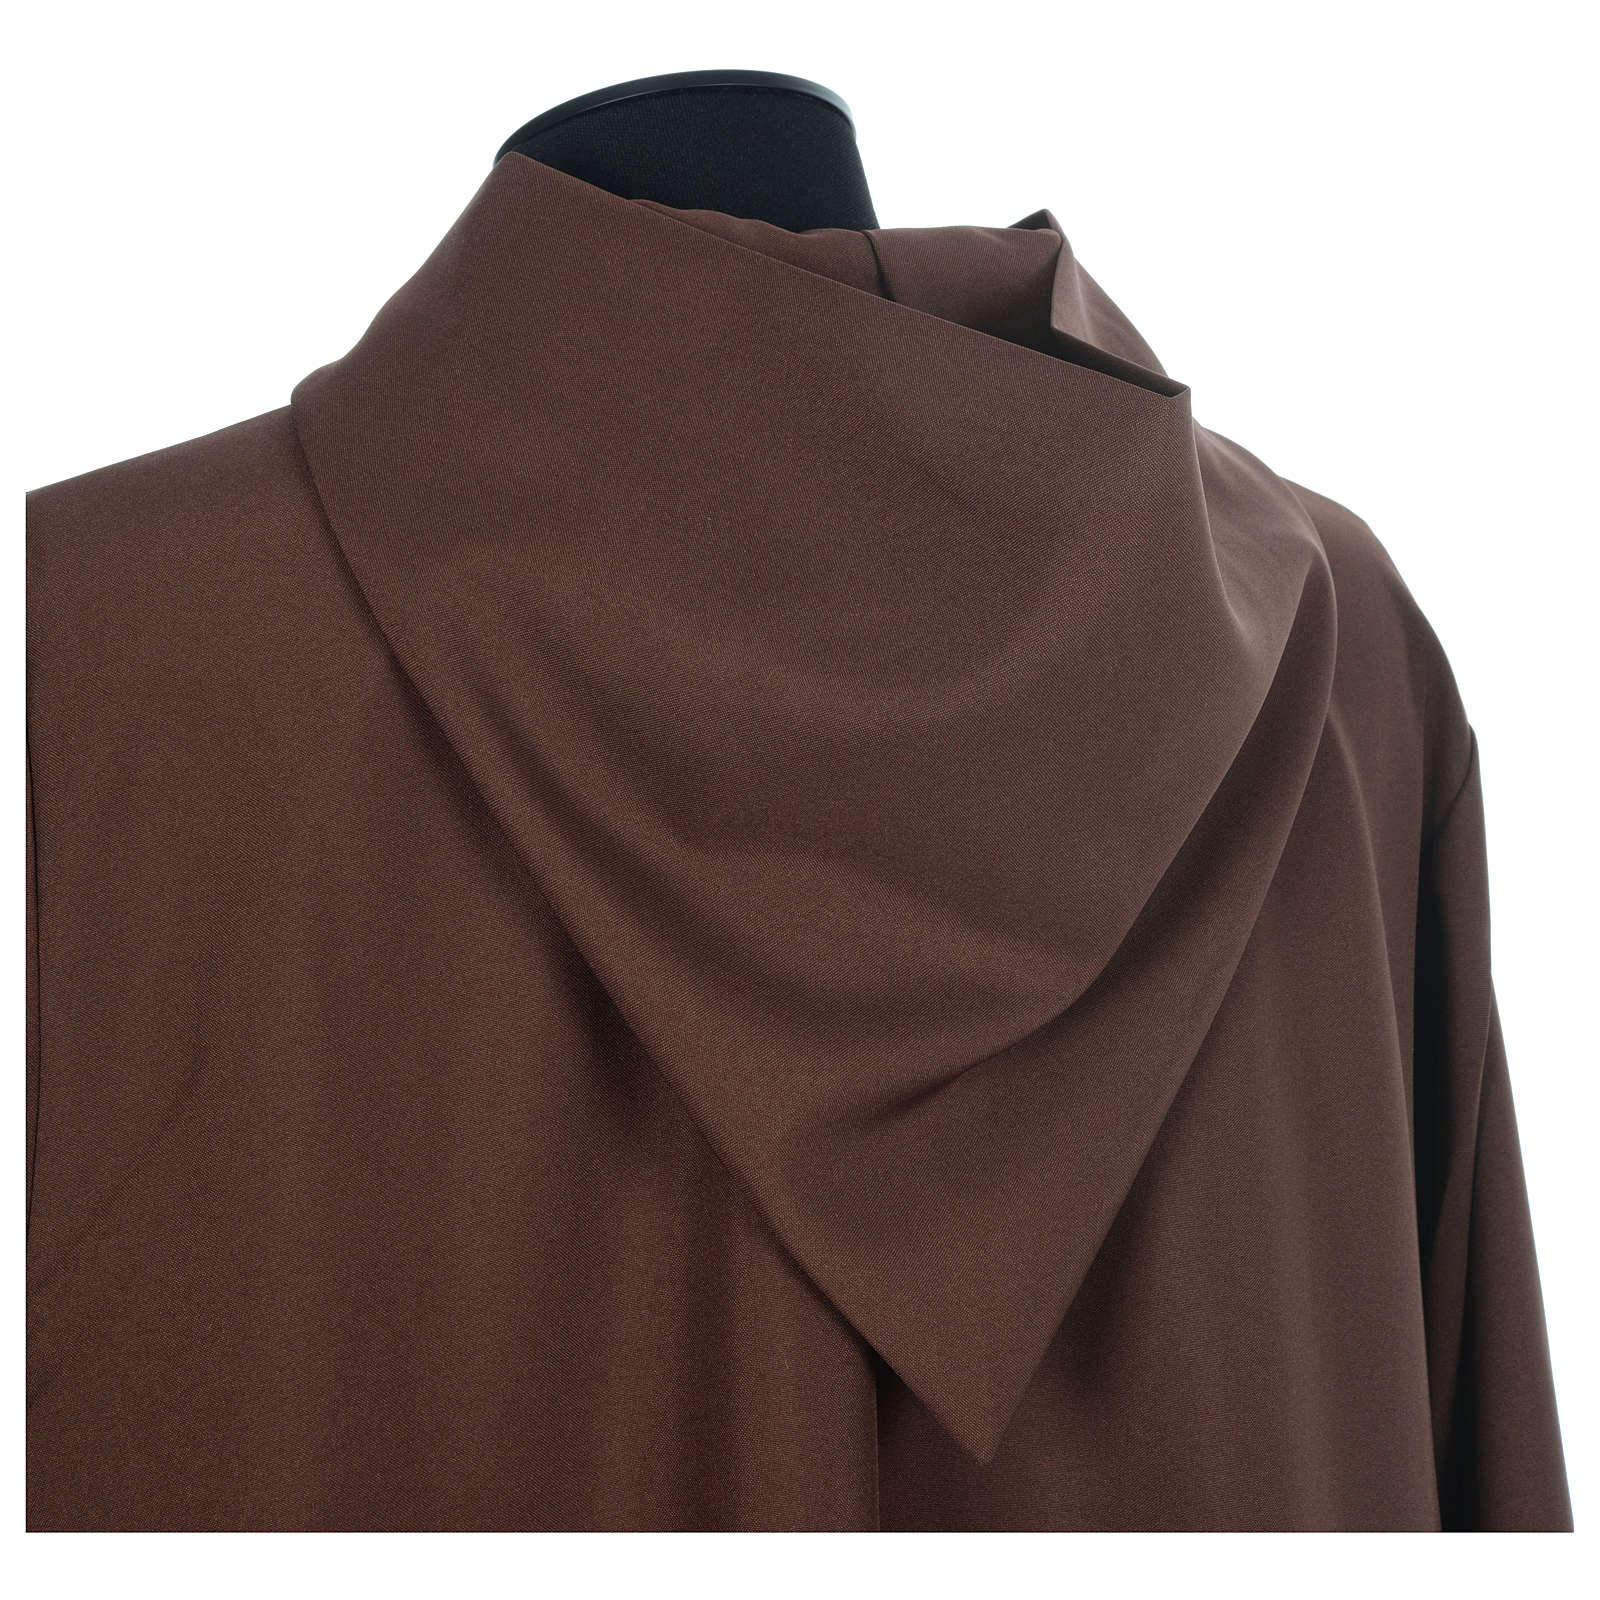 Franciscan brown alb in polyester 4